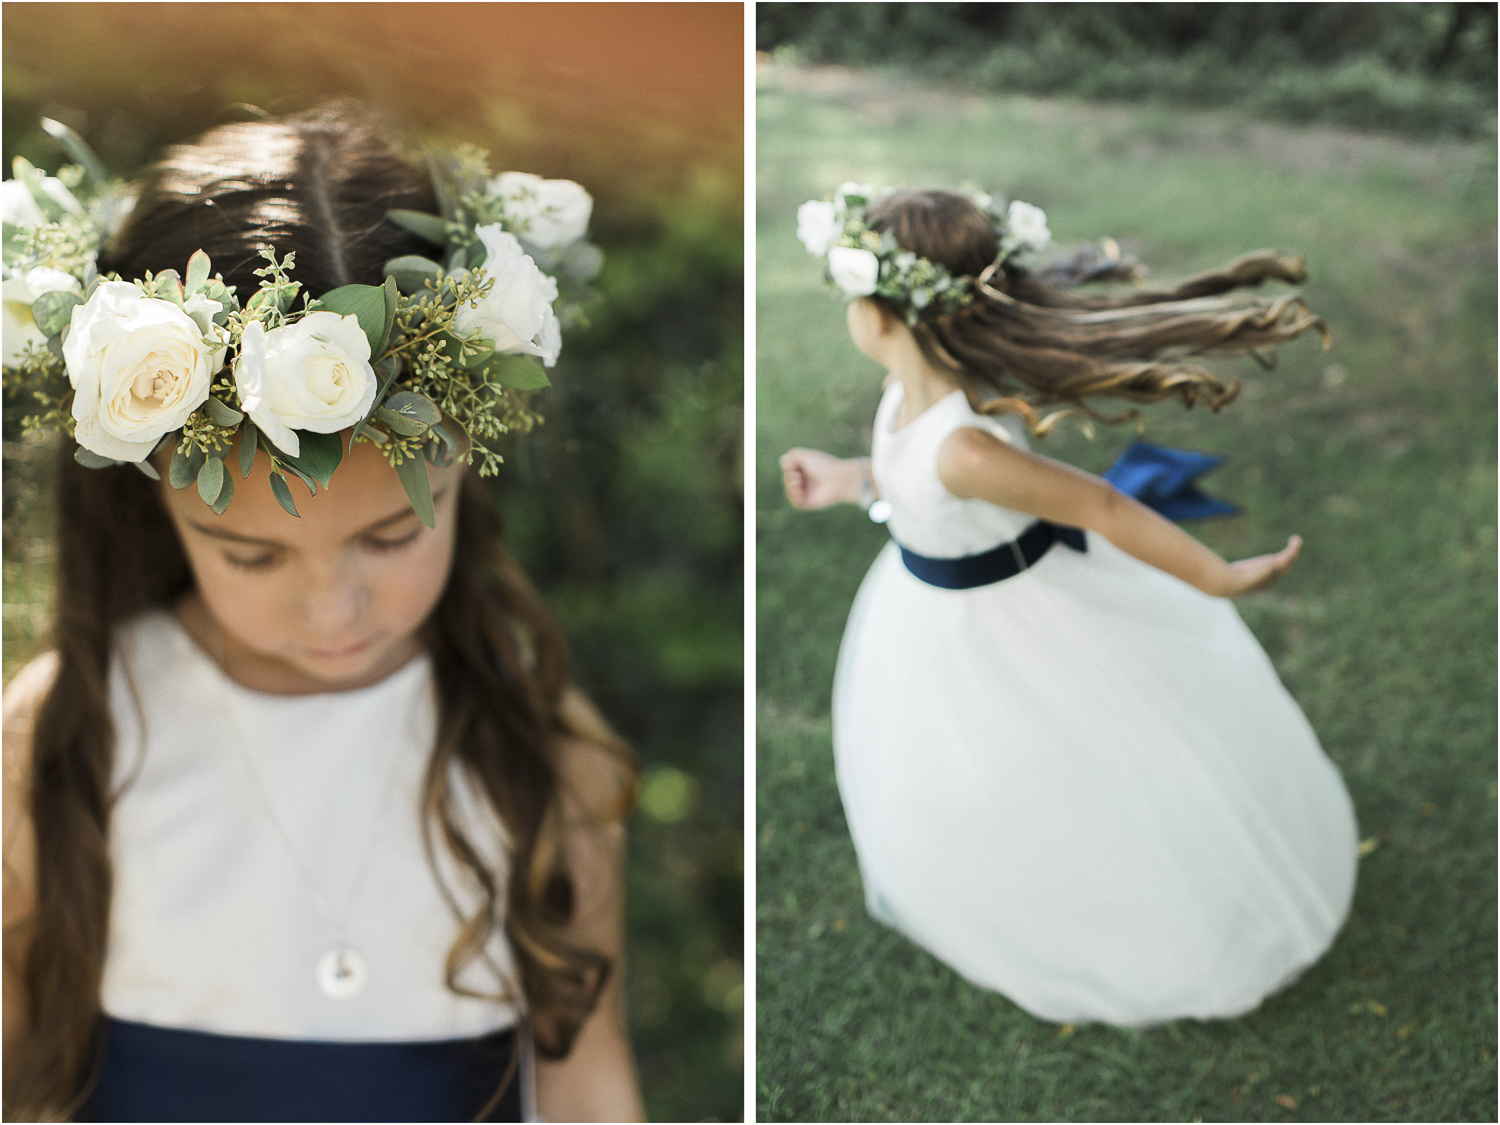 Flower girl sweetness!